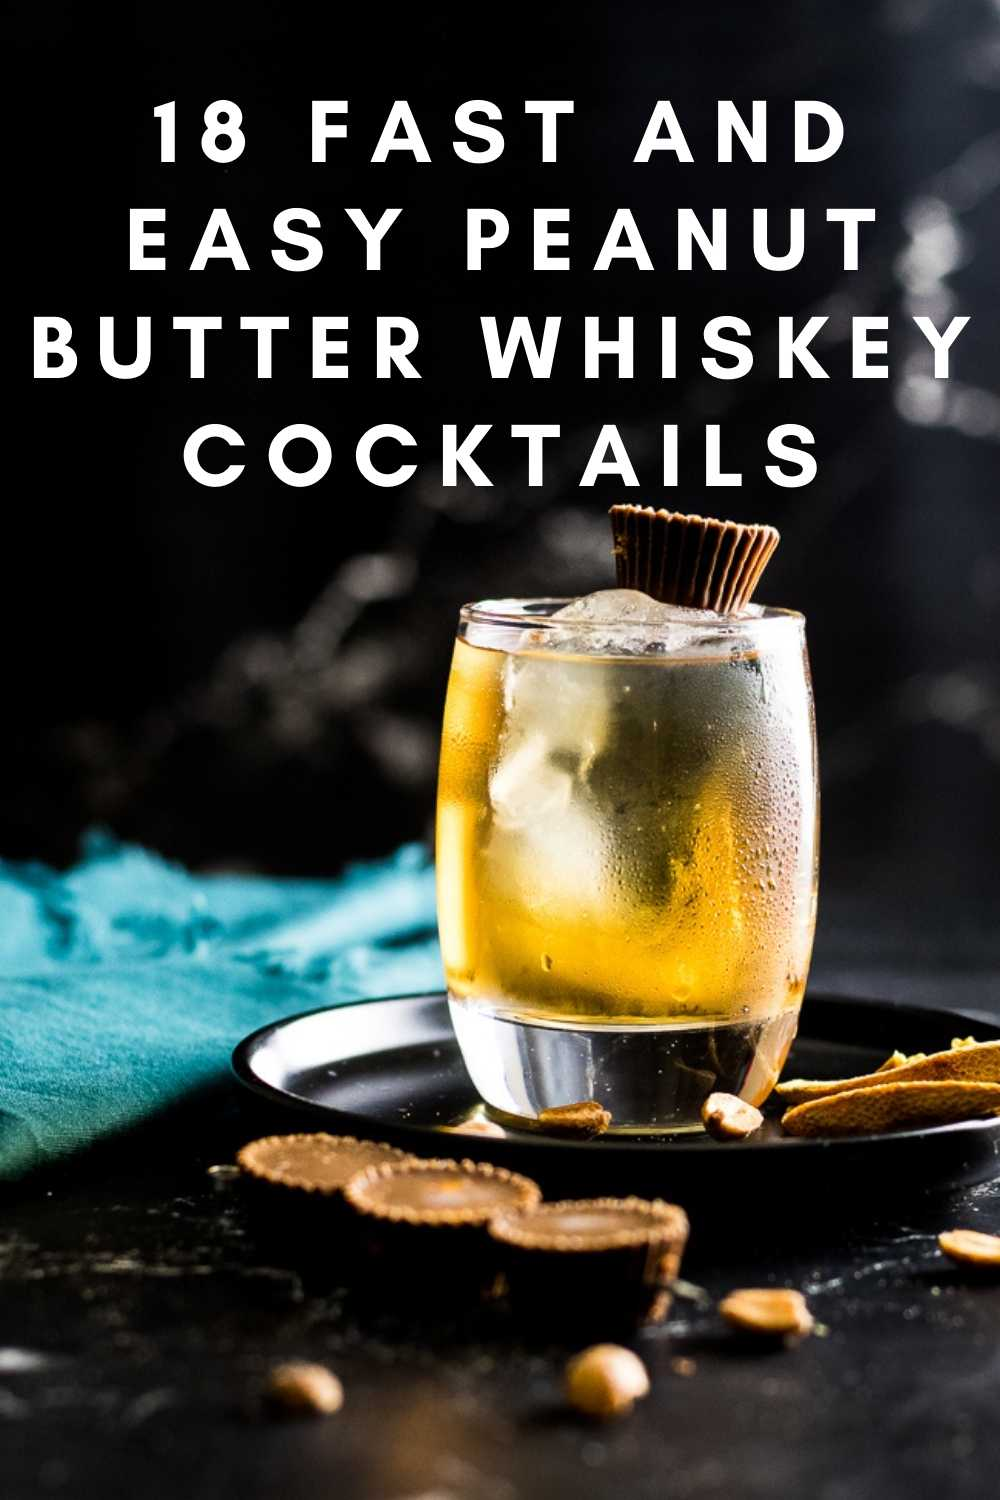 peanut butter and chocolate old fashioned with a Reese's cup garnish and text 18 fast and easy peanut butter whiskey cocktails